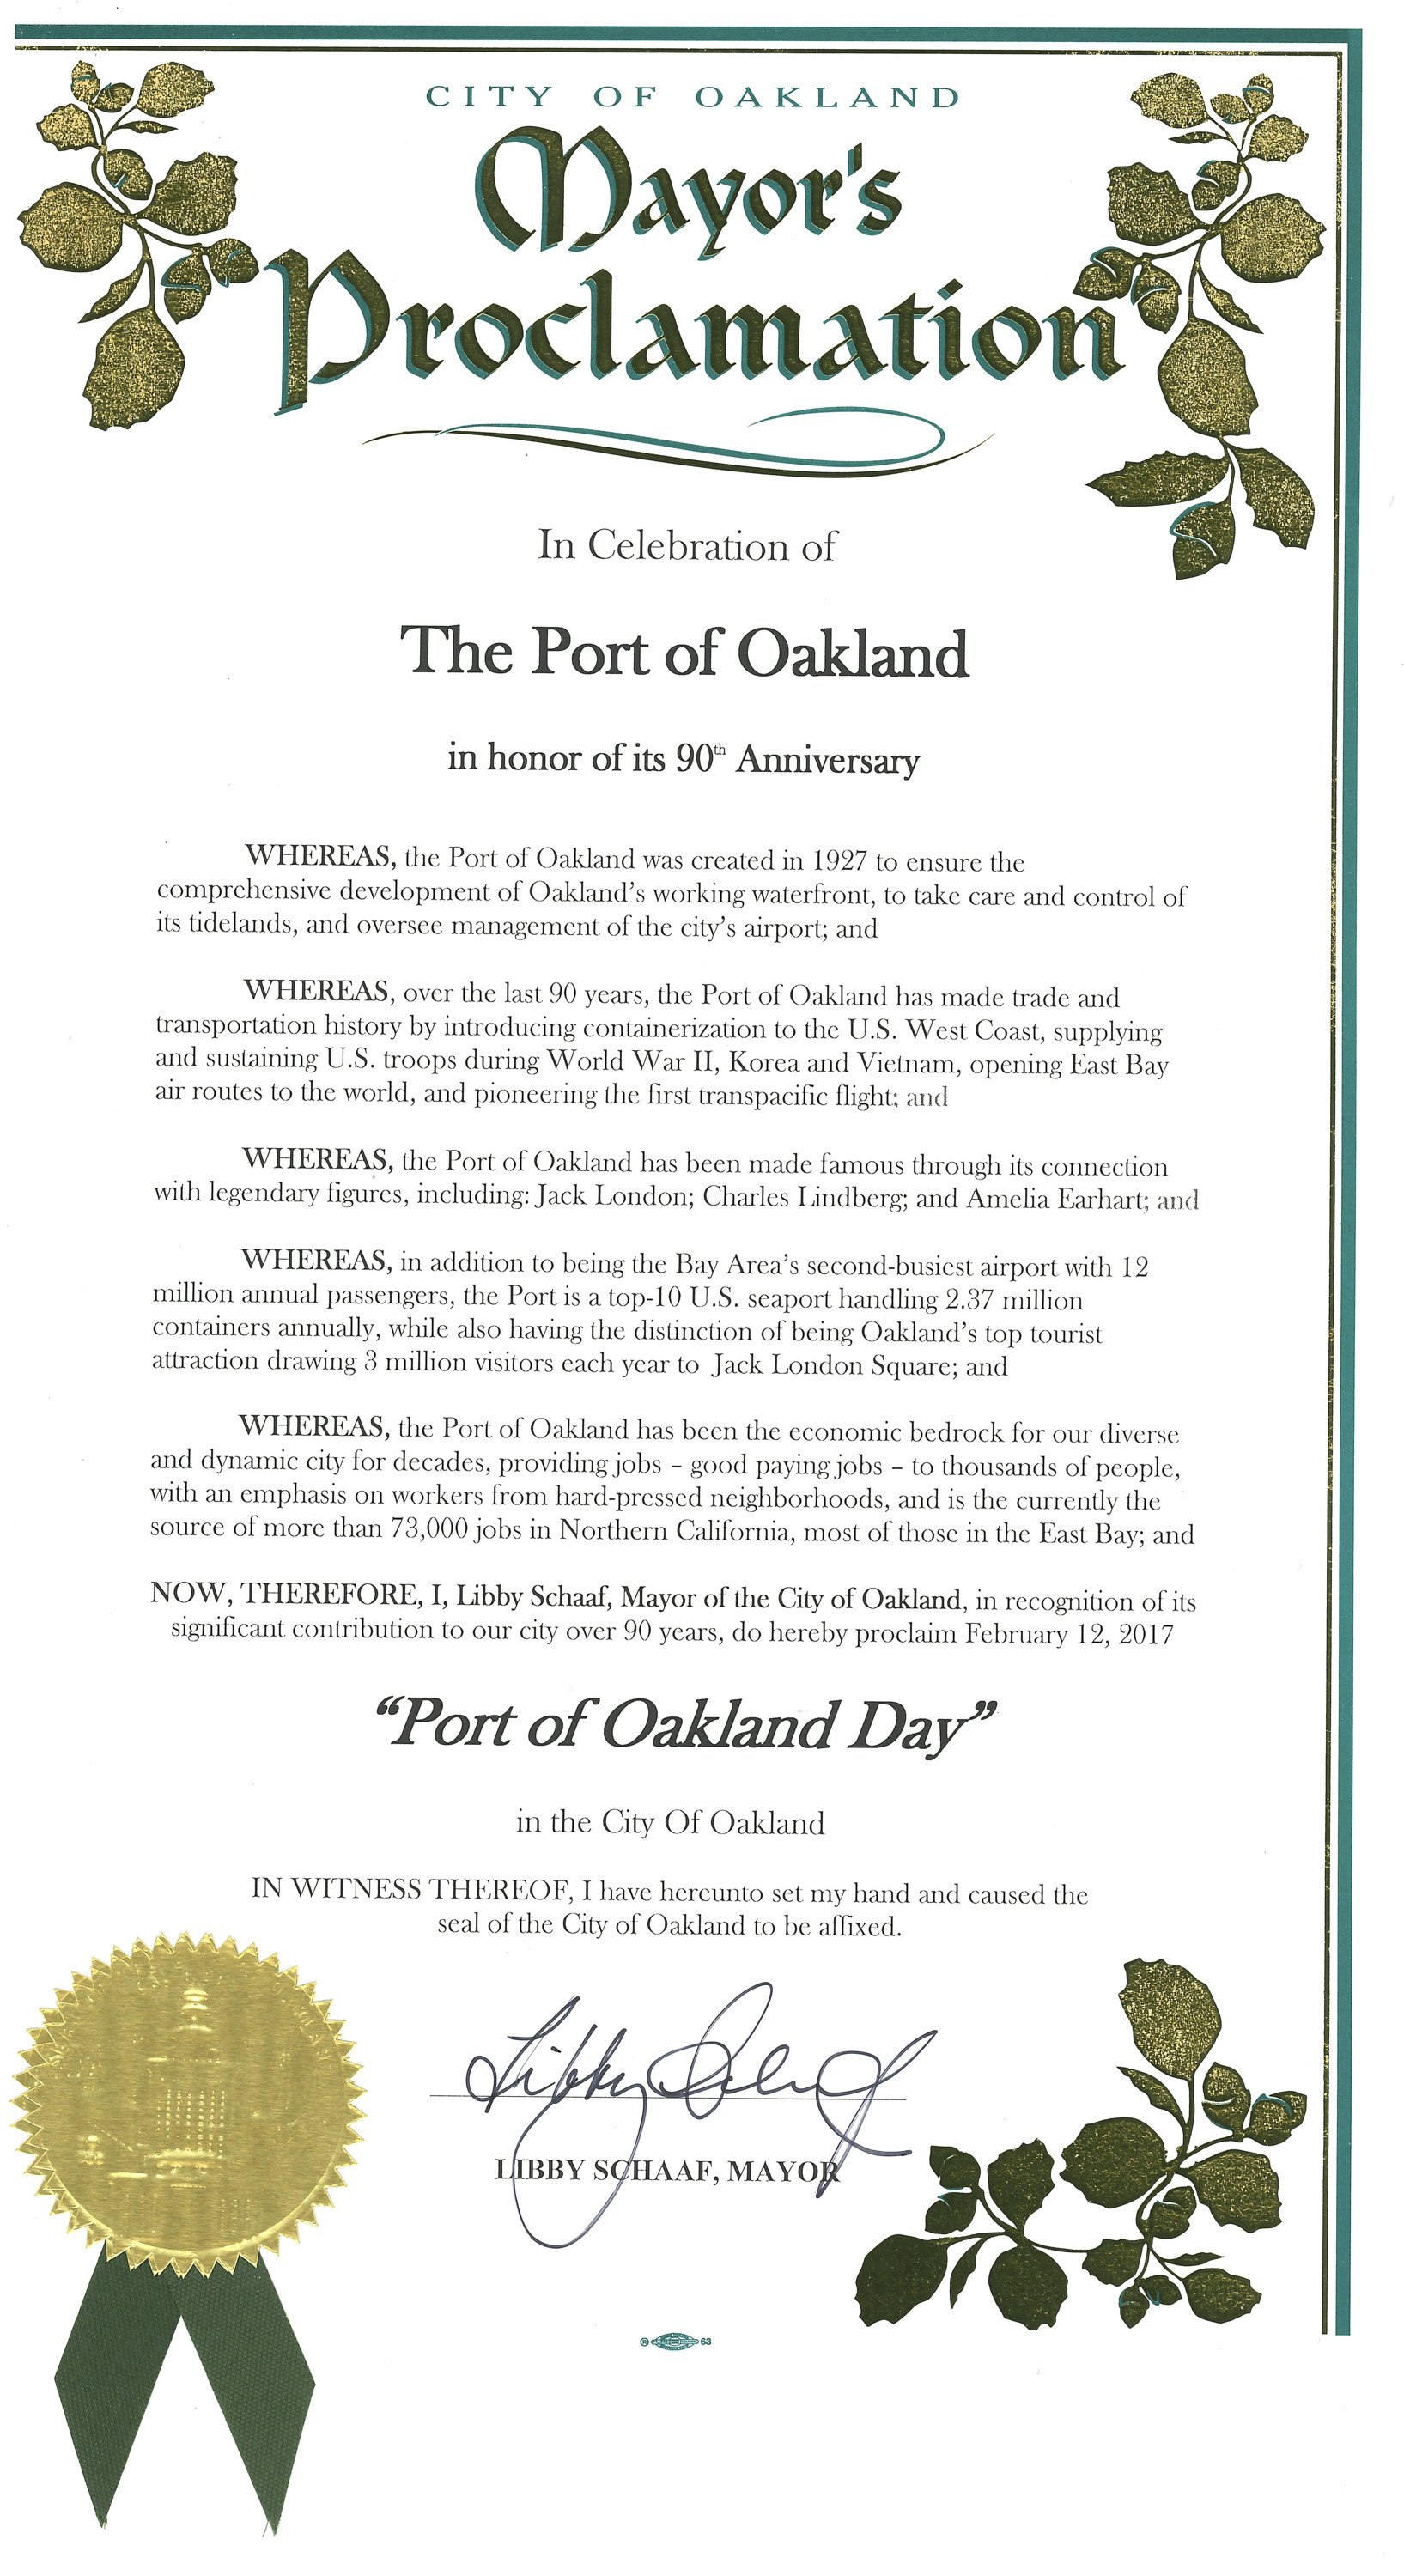 Mayoral Proclamation Template Proclamation by Oakland Mayor Libby Schaaf